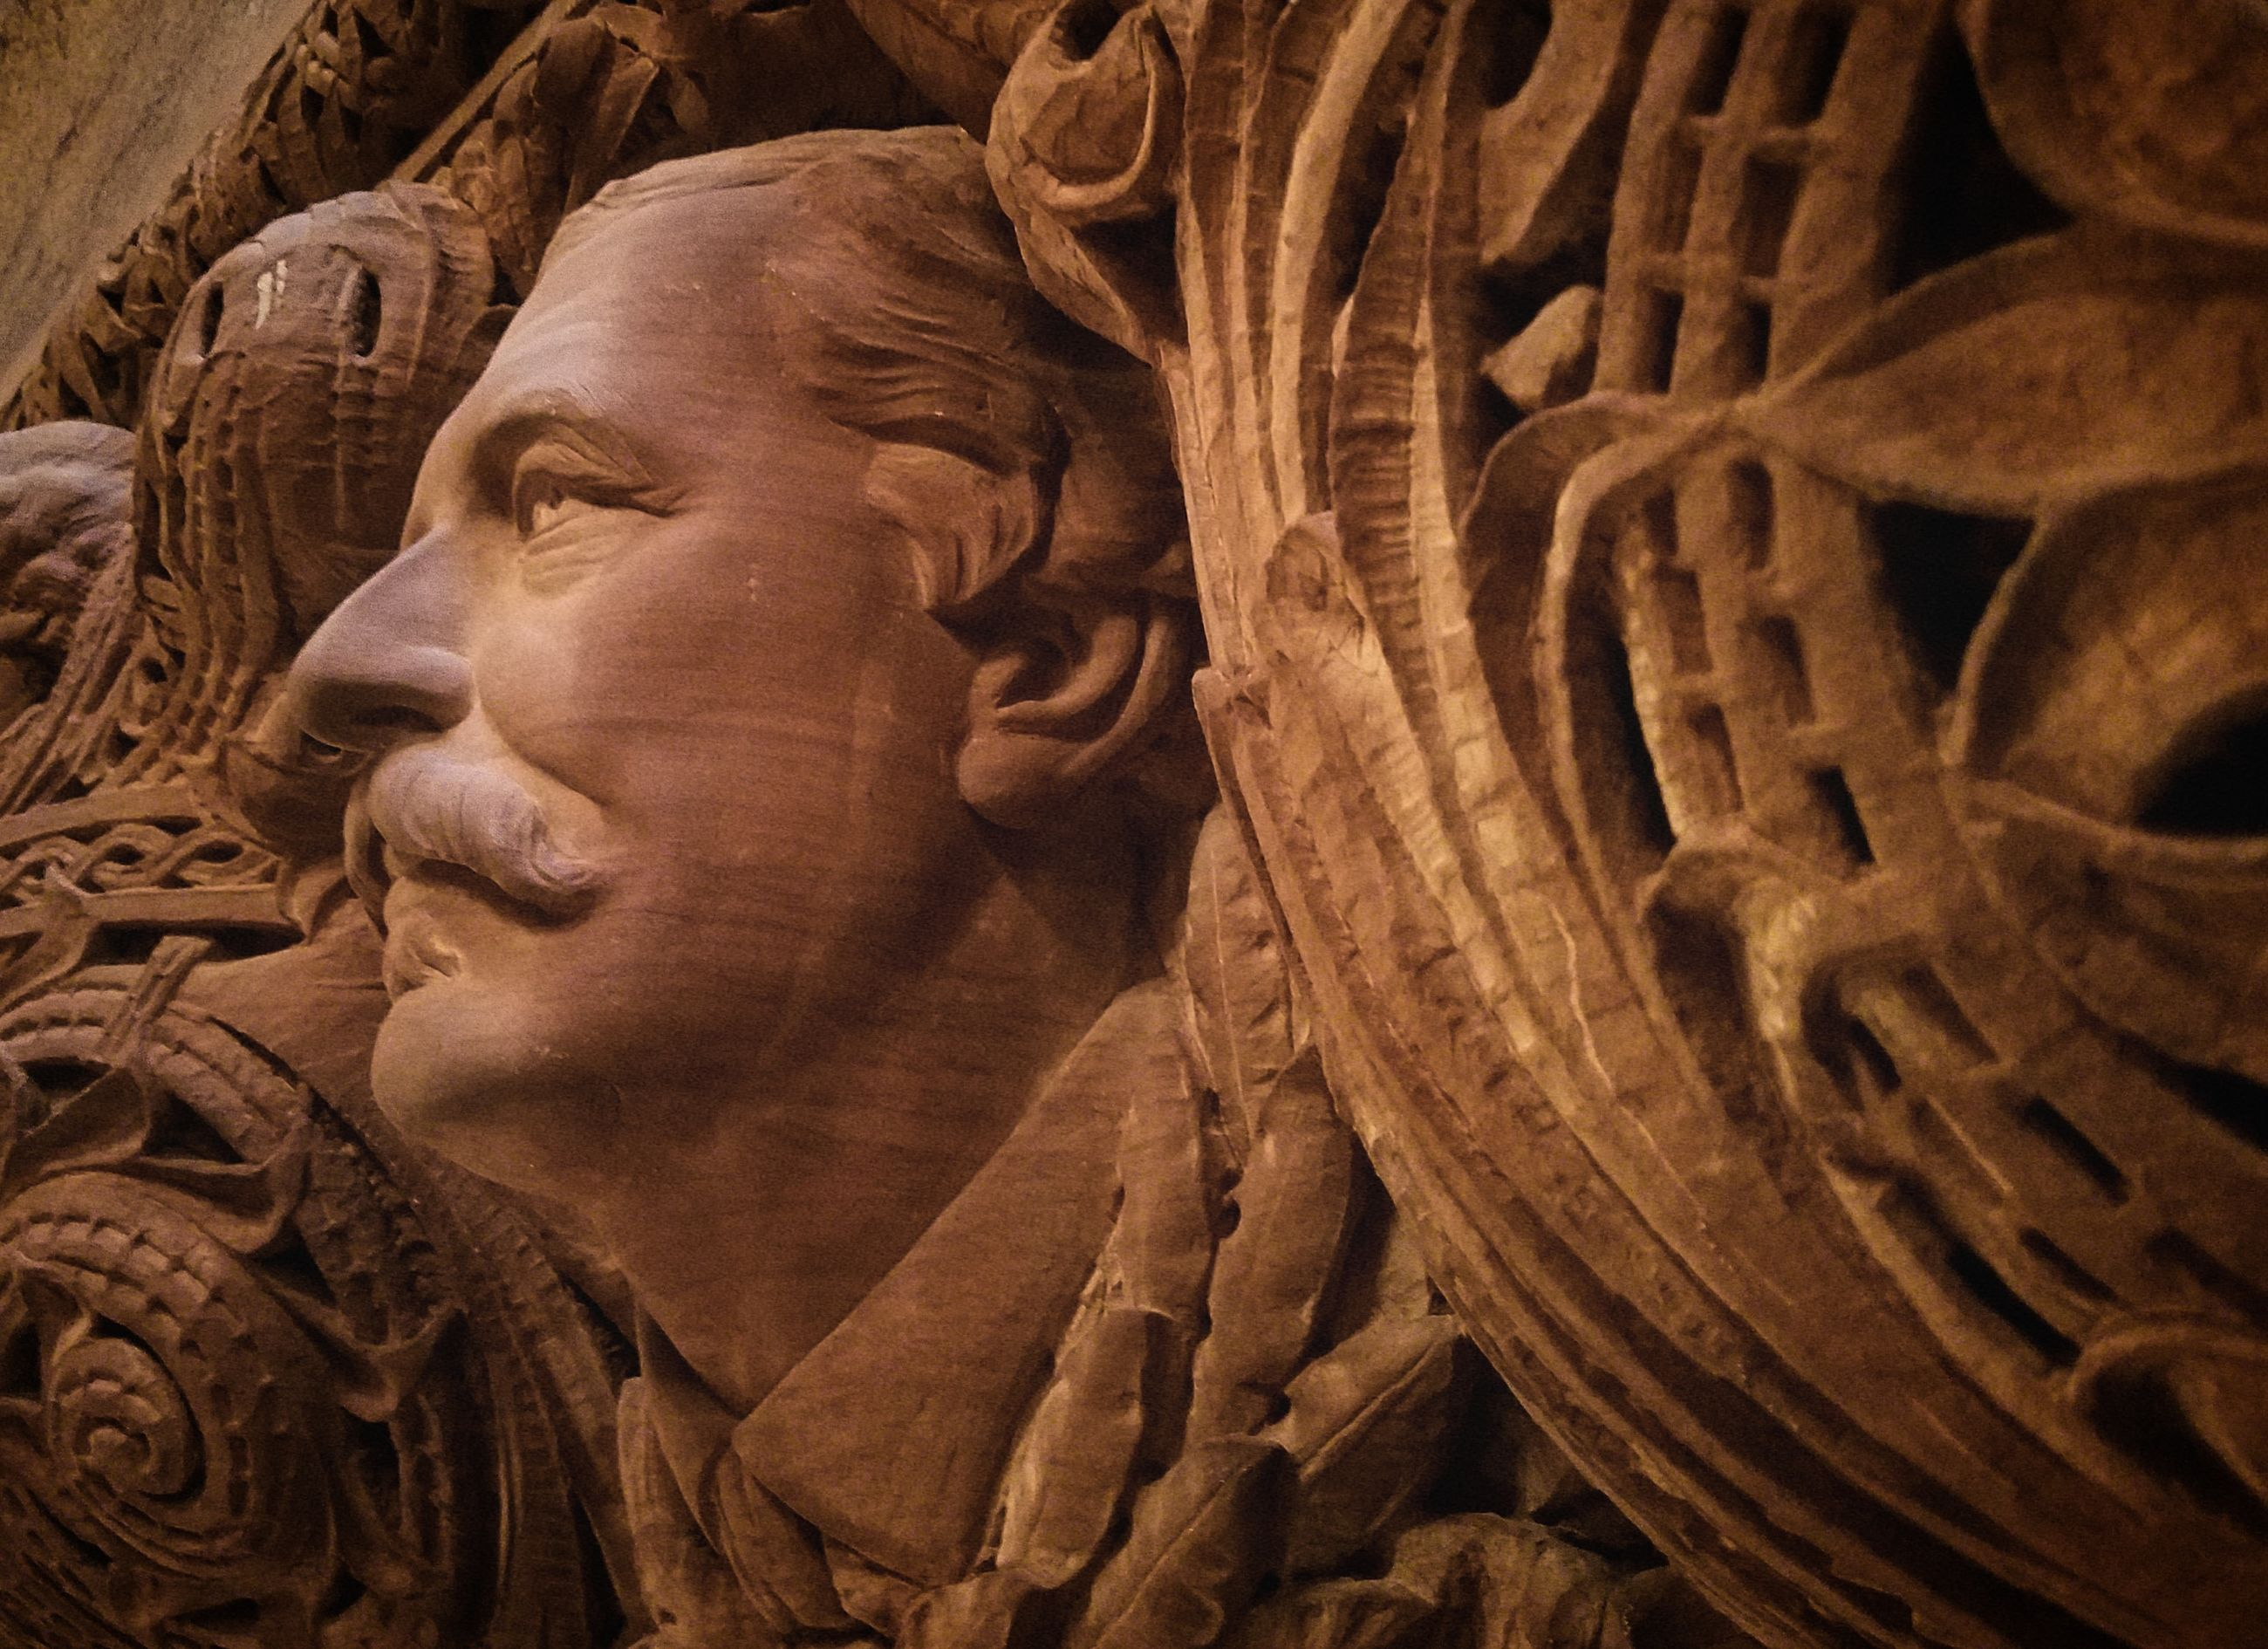 sculpture, art and craft, history, statue, human representation, craft, the past, representation, close-up, architecture, creativity, no people, carving - craft product, ancient, male likeness, indoors, travel destinations, portrait, ancient civilization, archaeology, bas relief, ornate